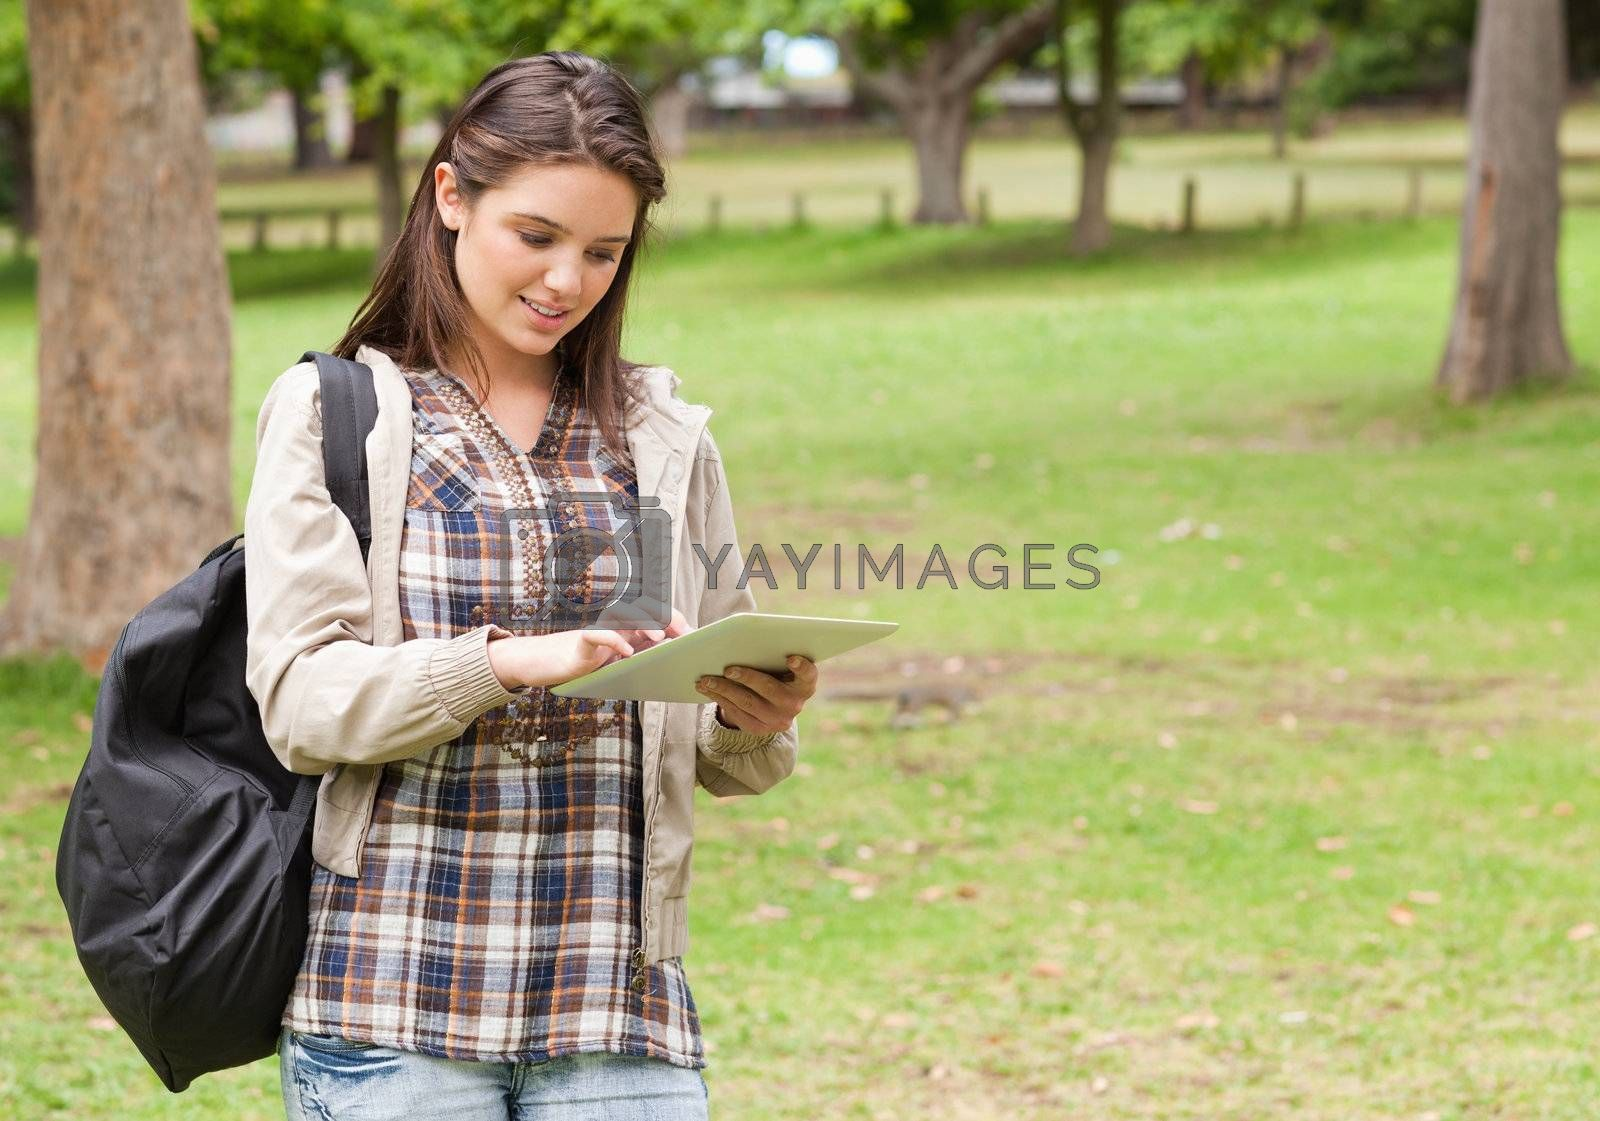 Young female student using a tactile tablet in a park